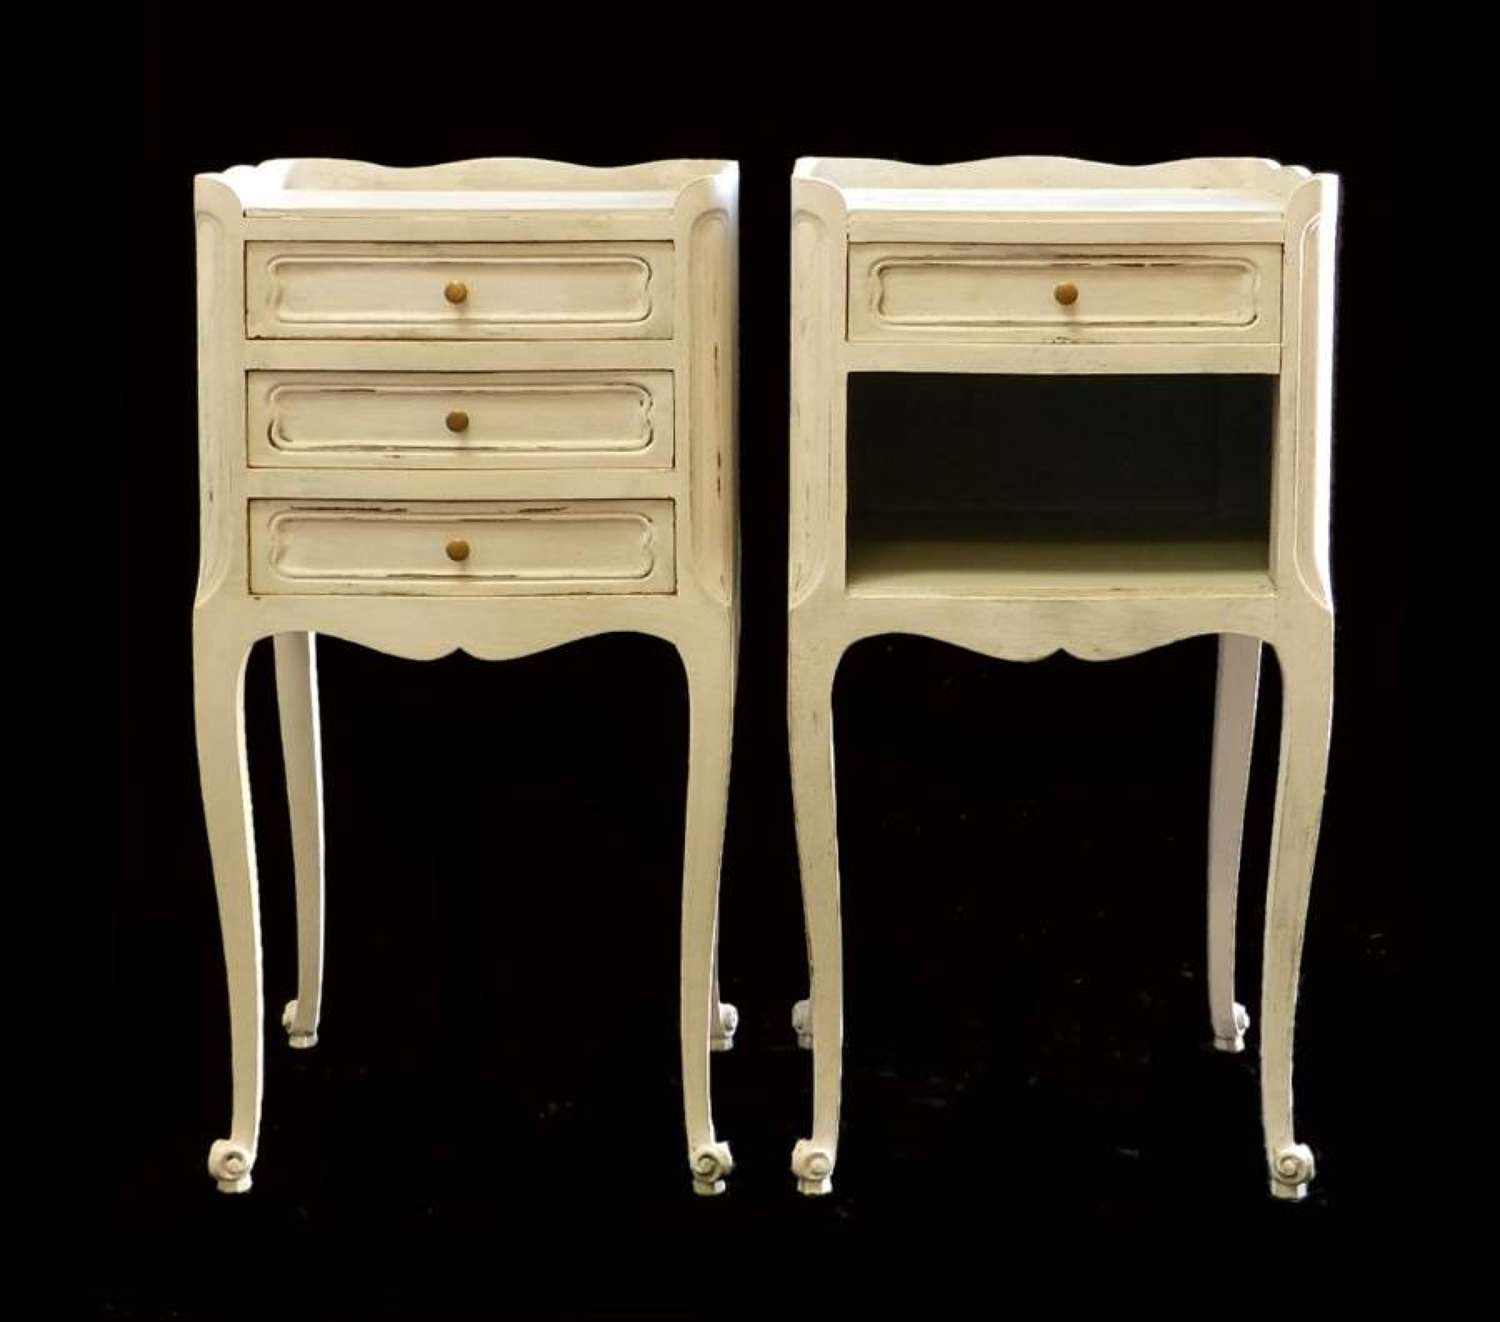 Pair French Side Cabinets Bedside Tables Nightstands vintage Painted Louis